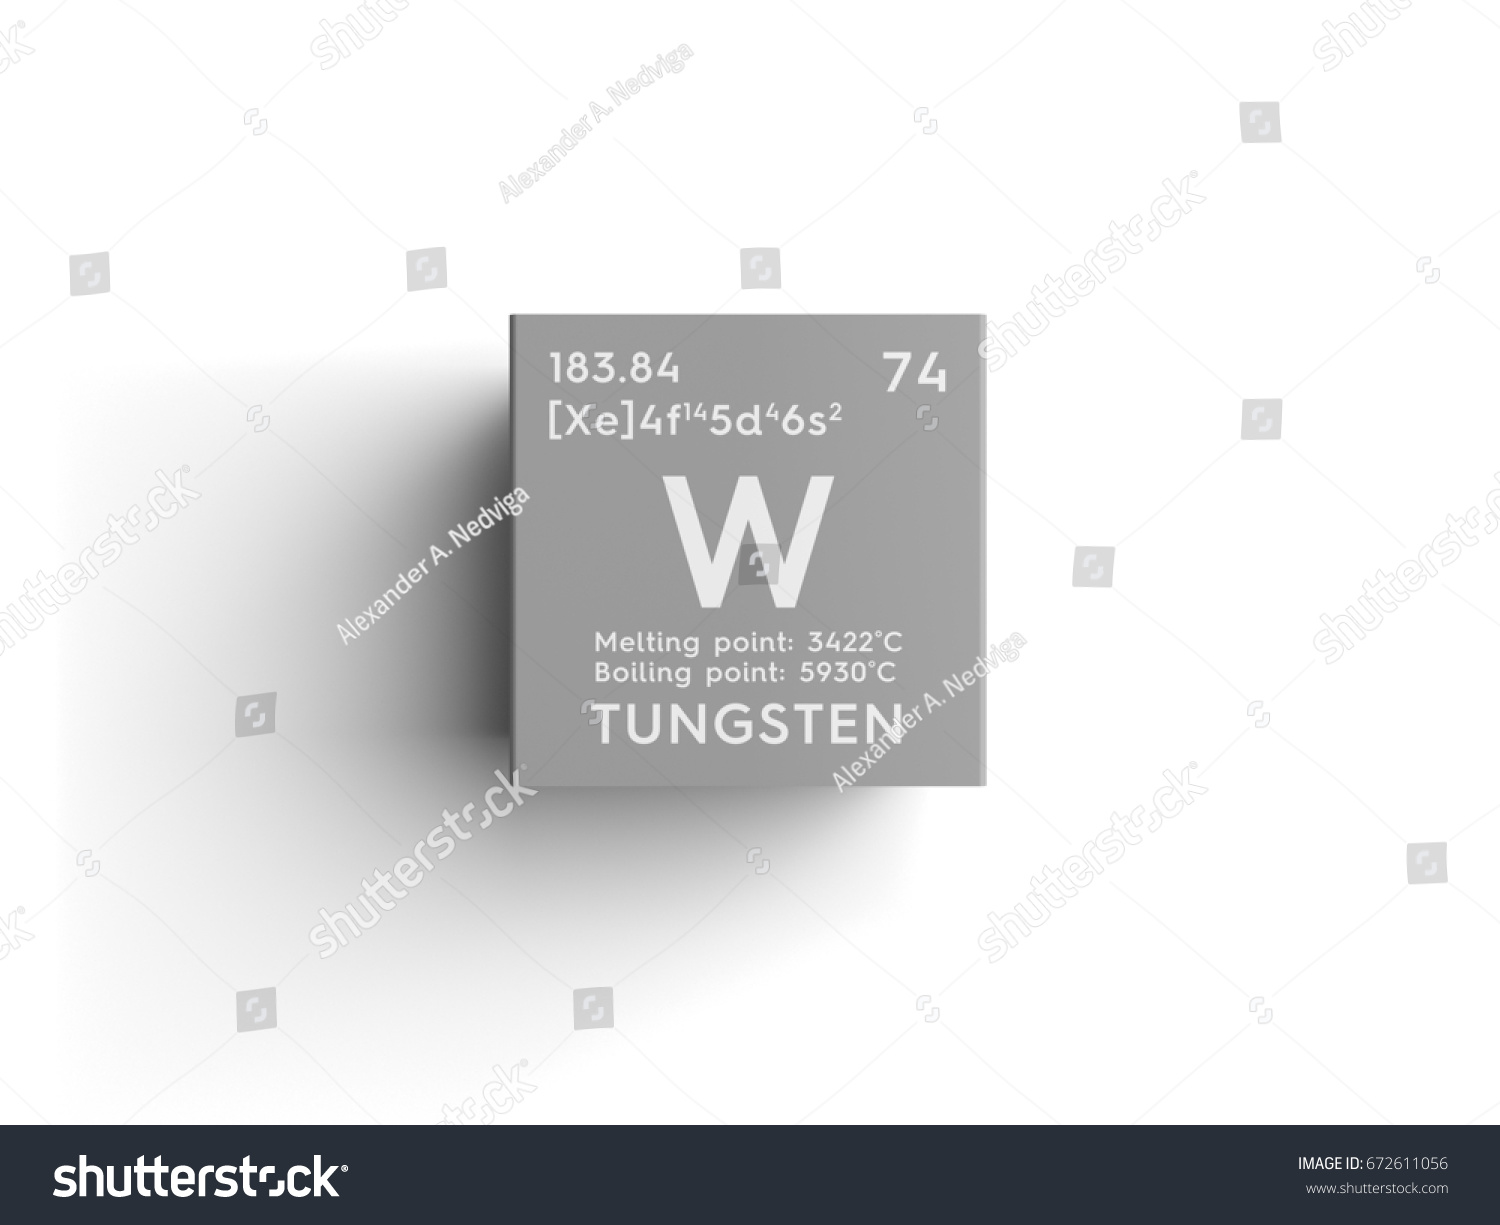 Periodic table tungsten choice image periodic table images periodic table tungsten gallery periodic table images tungsten symbol periodic table choice image periodic table images gamestrikefo Choice Image